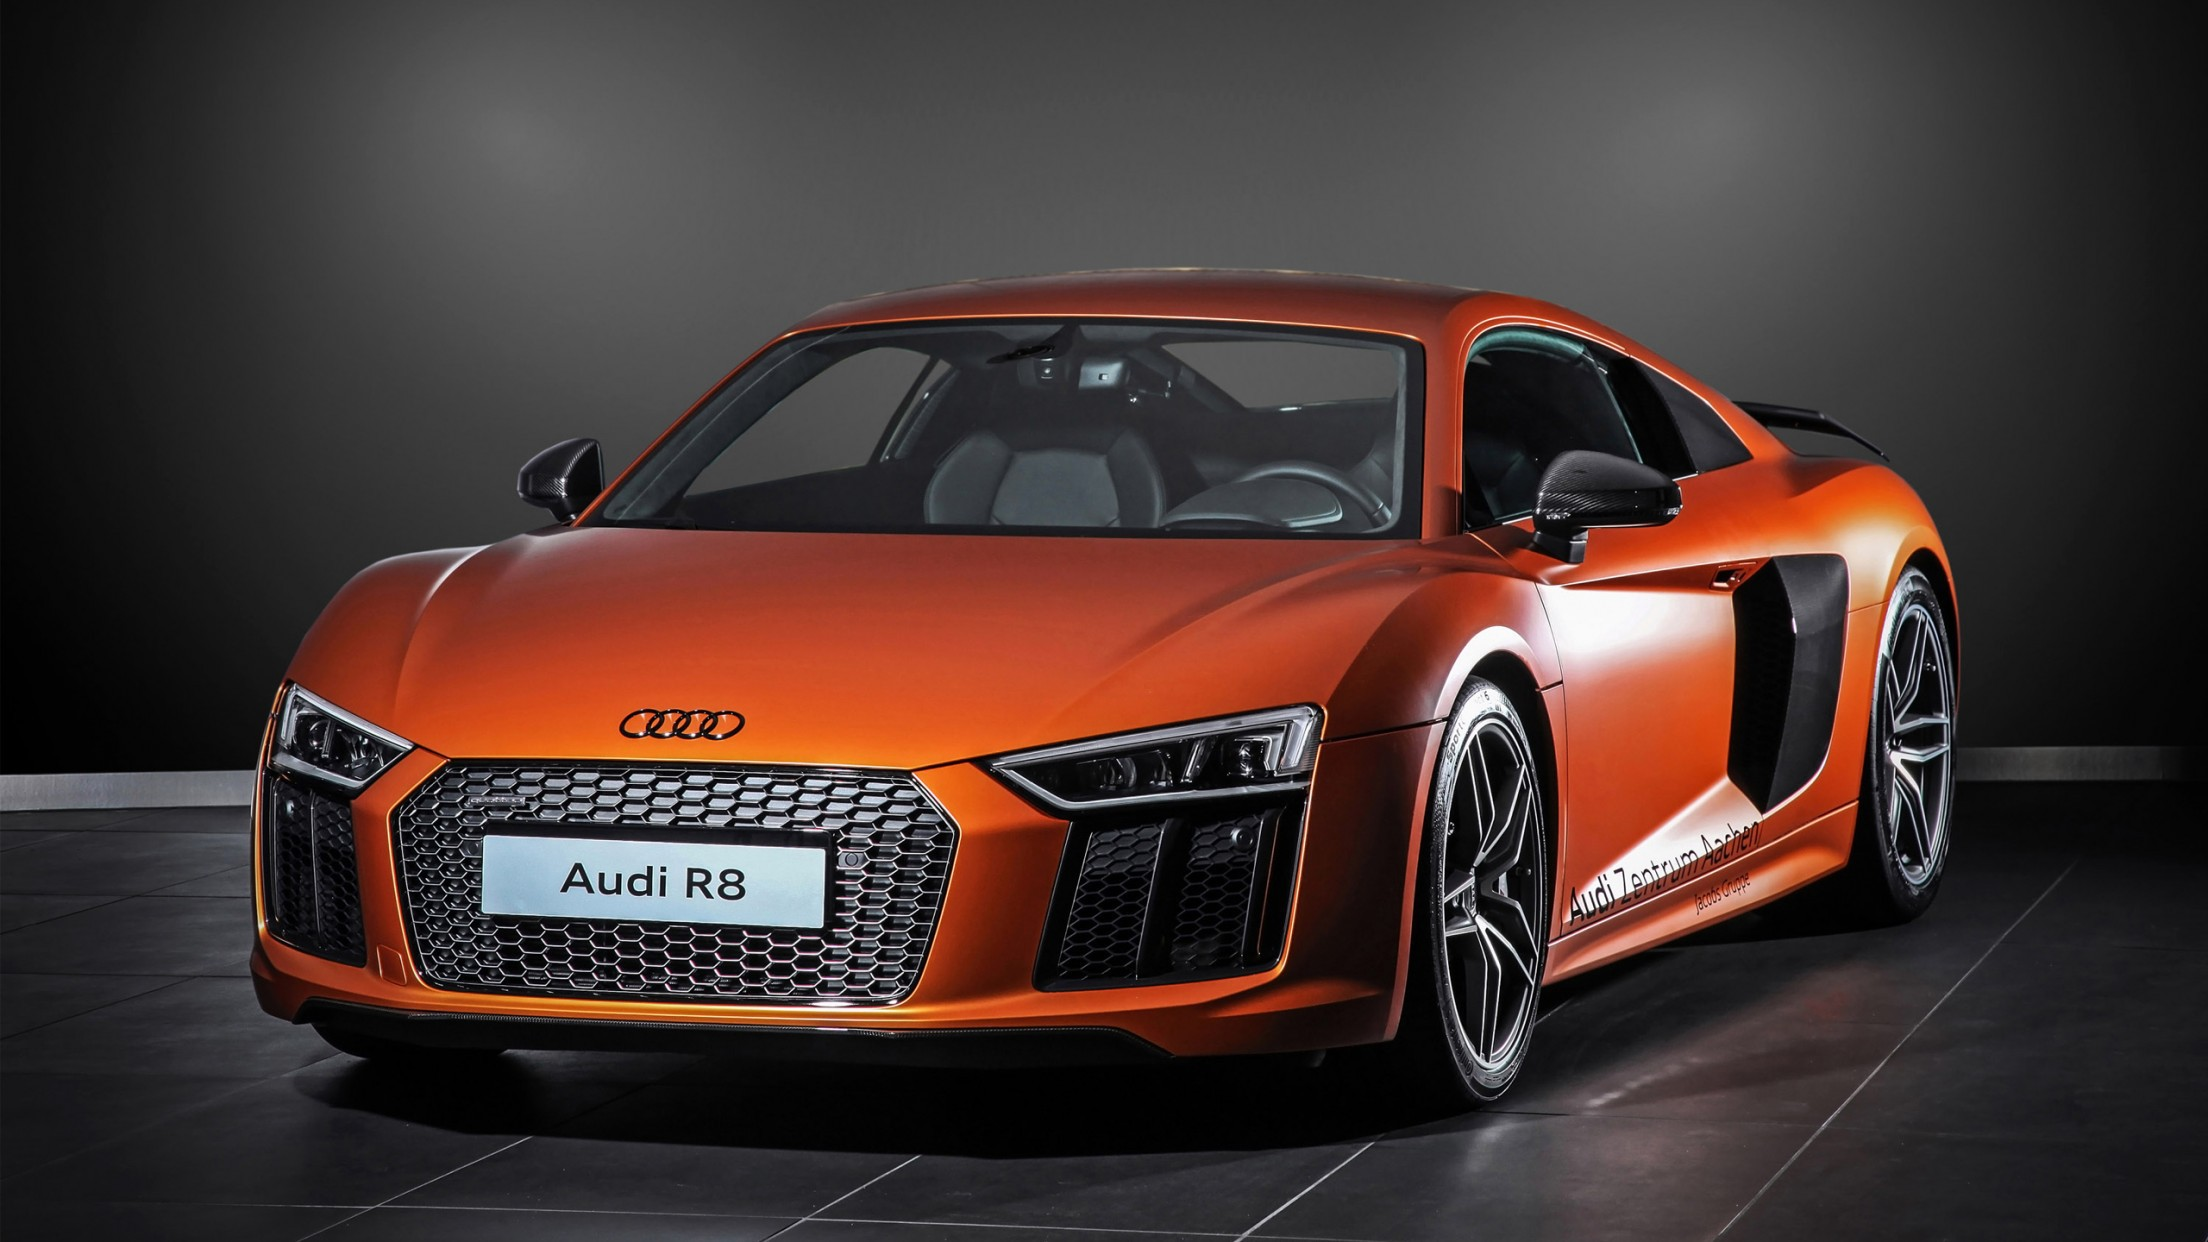 Audi R8 e-tron Wallpapers Images Photos Pictures Backgrounds